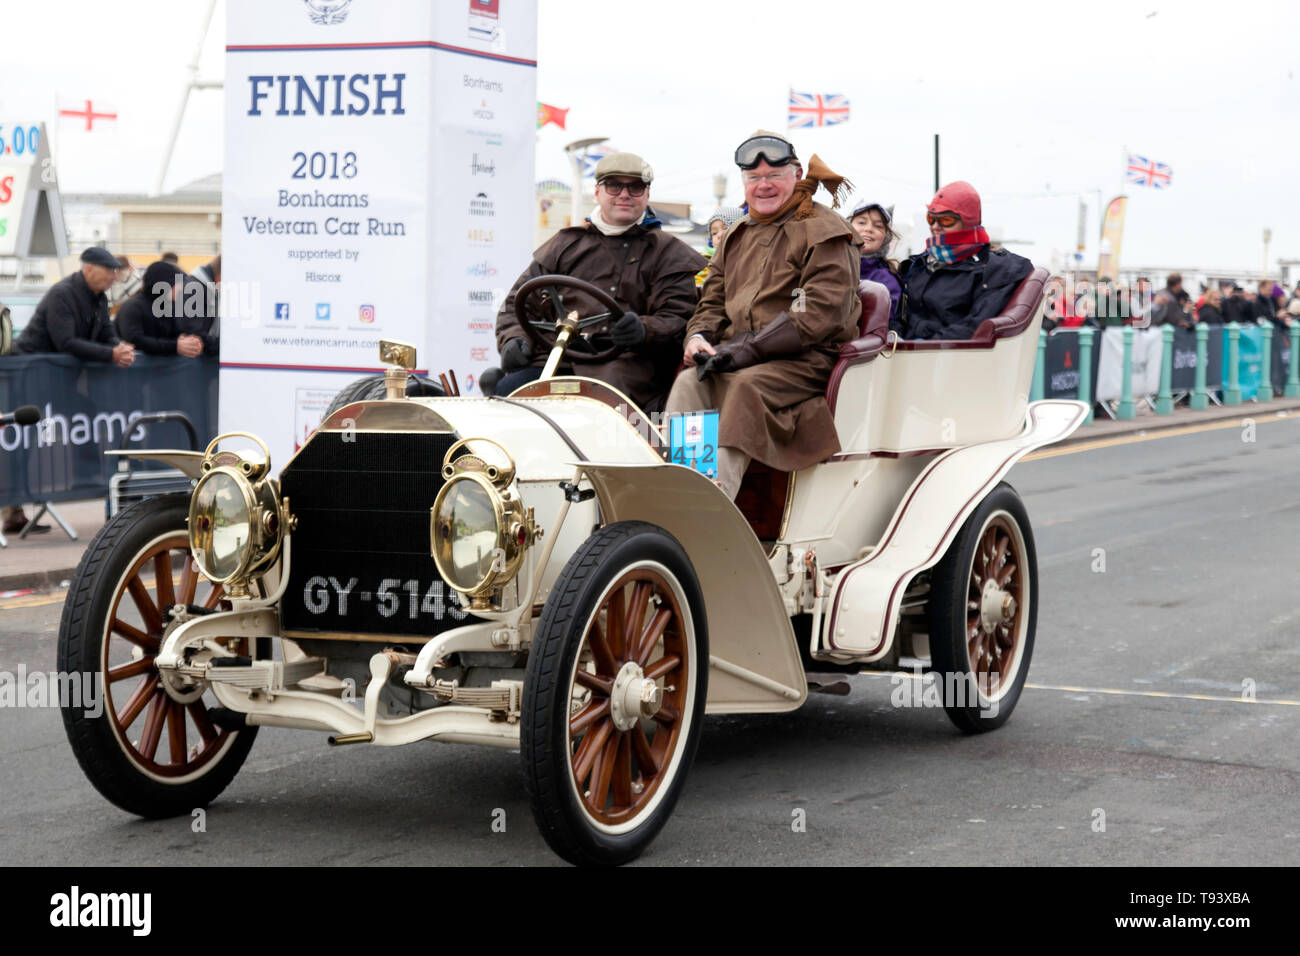 A 1903, White Mercedes crosses the finishing line during the 2018 London to Brighton Veteran Car Run Stock Photo